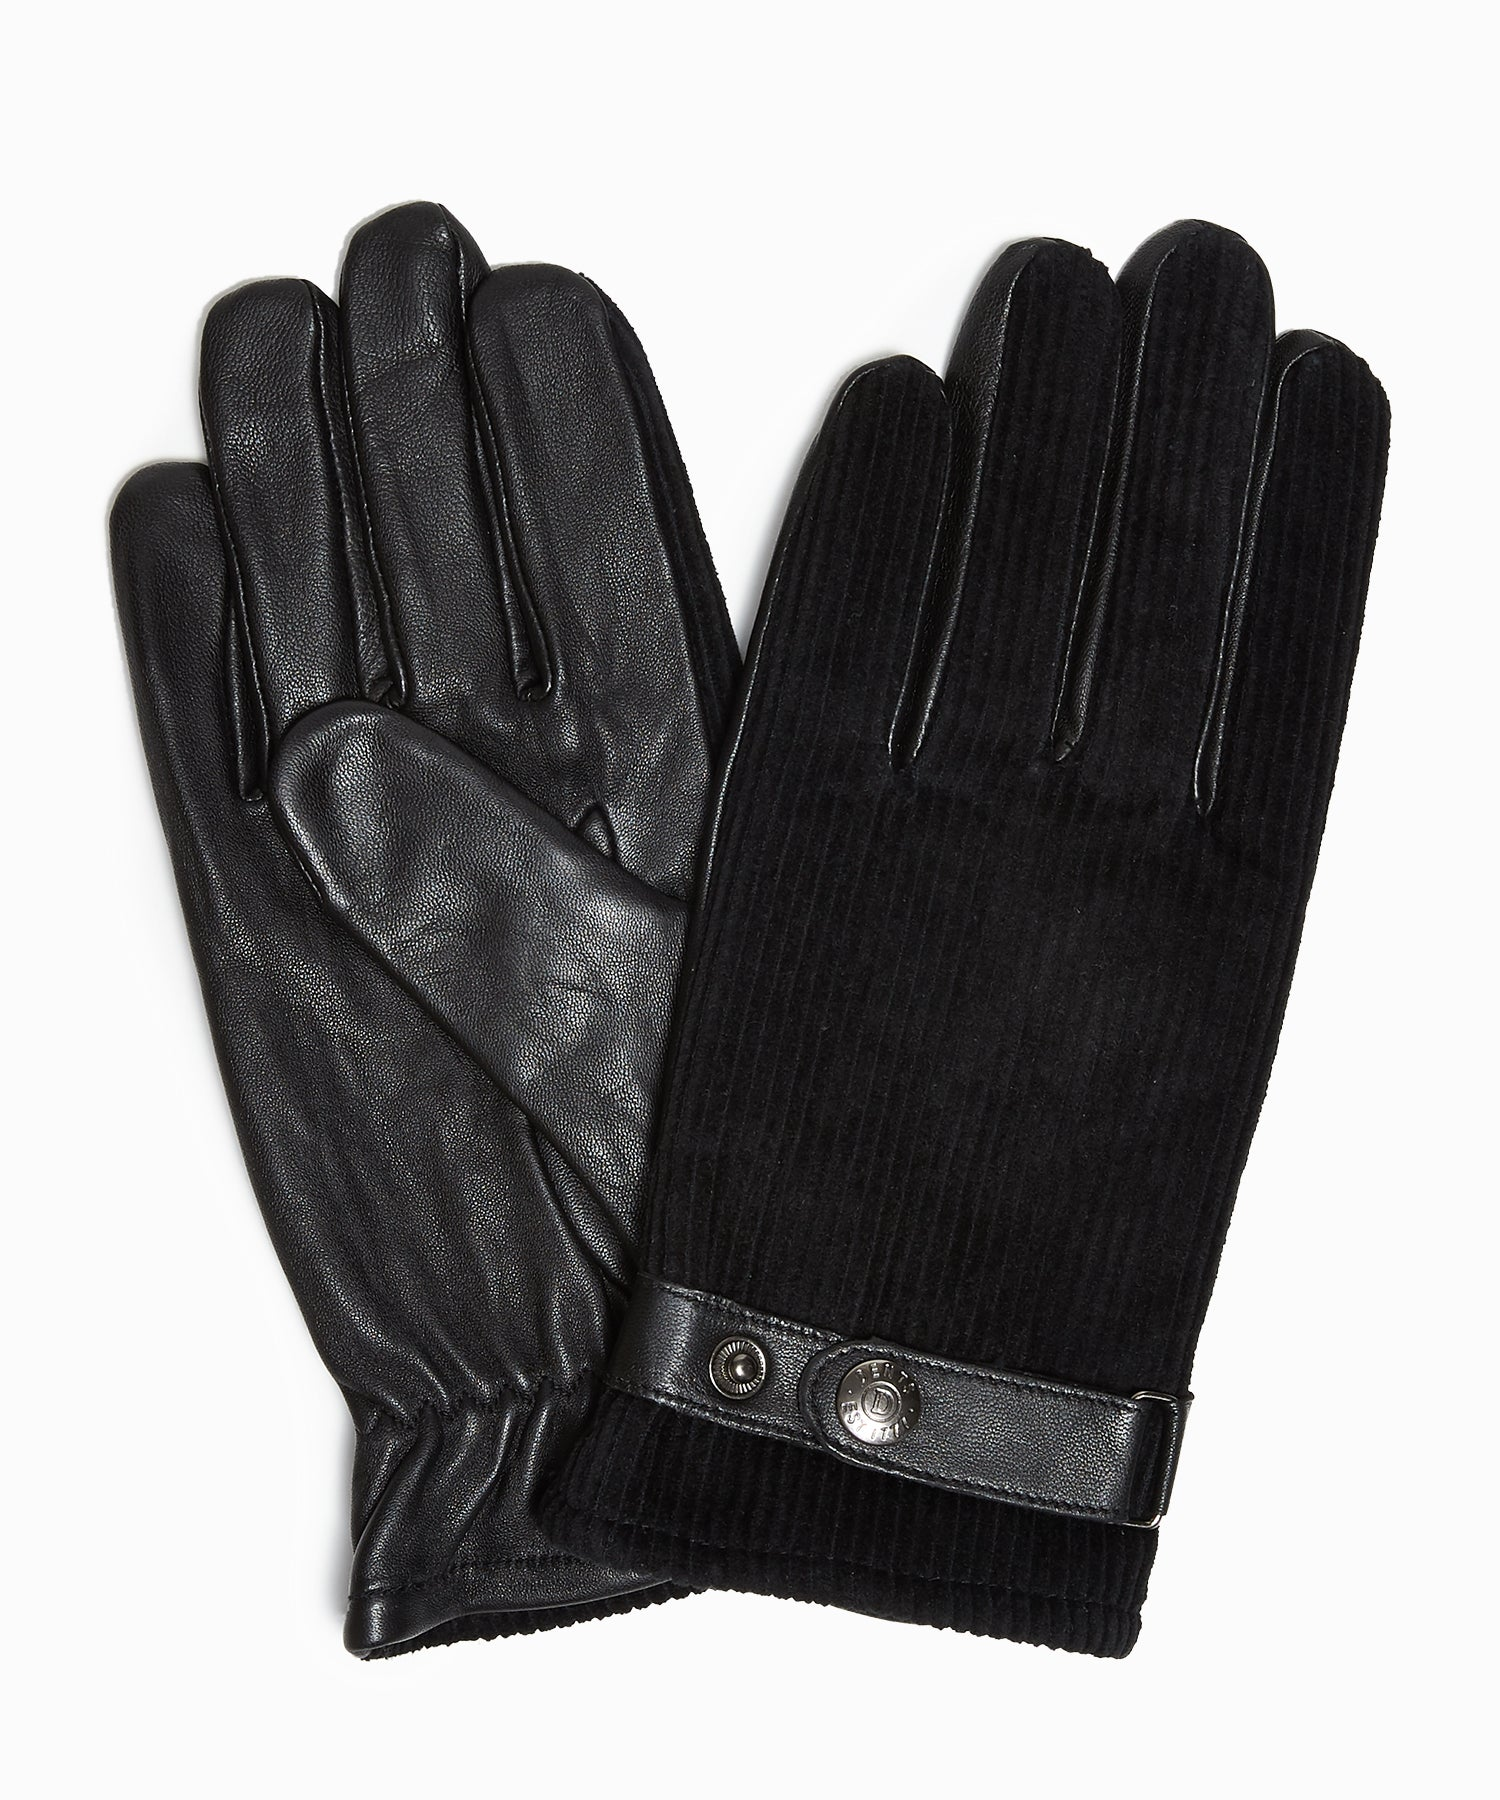 Dents Malton Fleece Lined Corduroy & Leather Gloves in Black